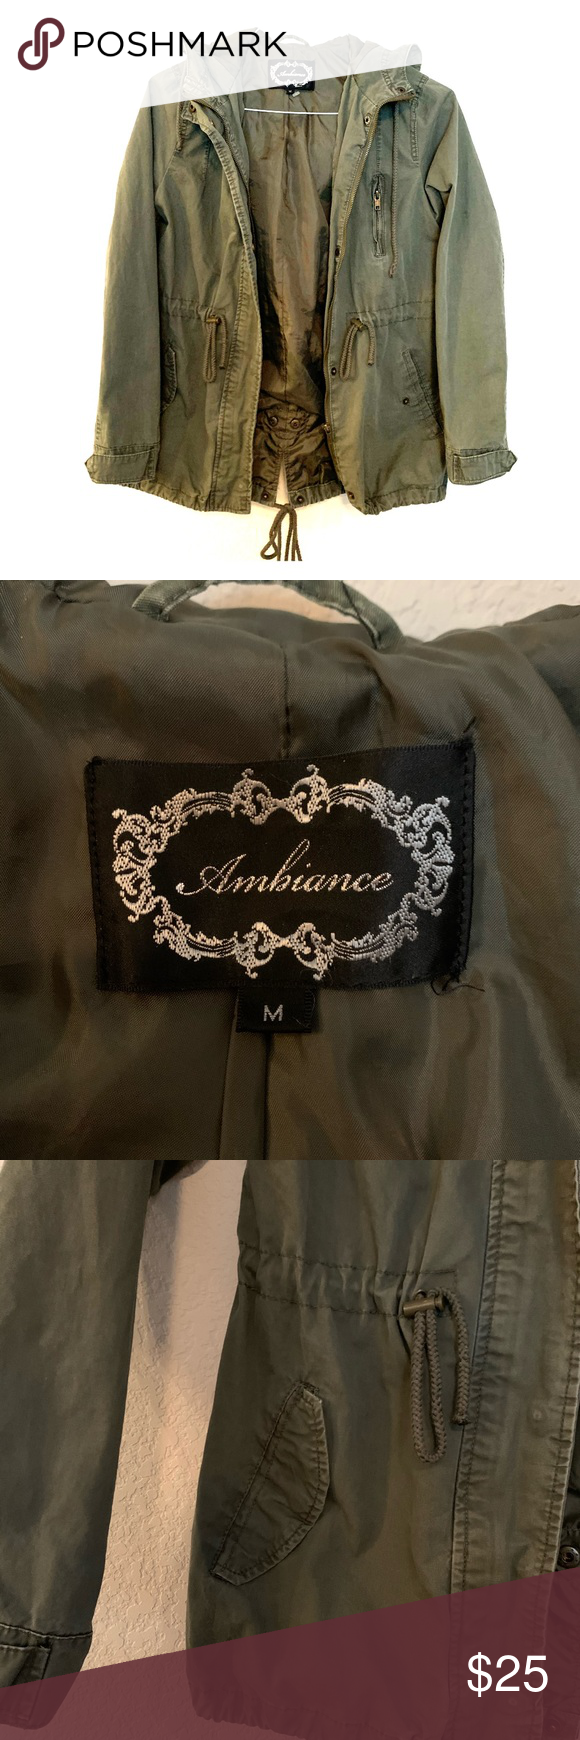 Army Green Field Jacket Cute Army Green Field Jacket With Adjustable Tie Waist And Hood Ambiance Jackets Coats Utilit Field Jacket Army Green Clothes Design [ 1740 x 580 Pixel ]